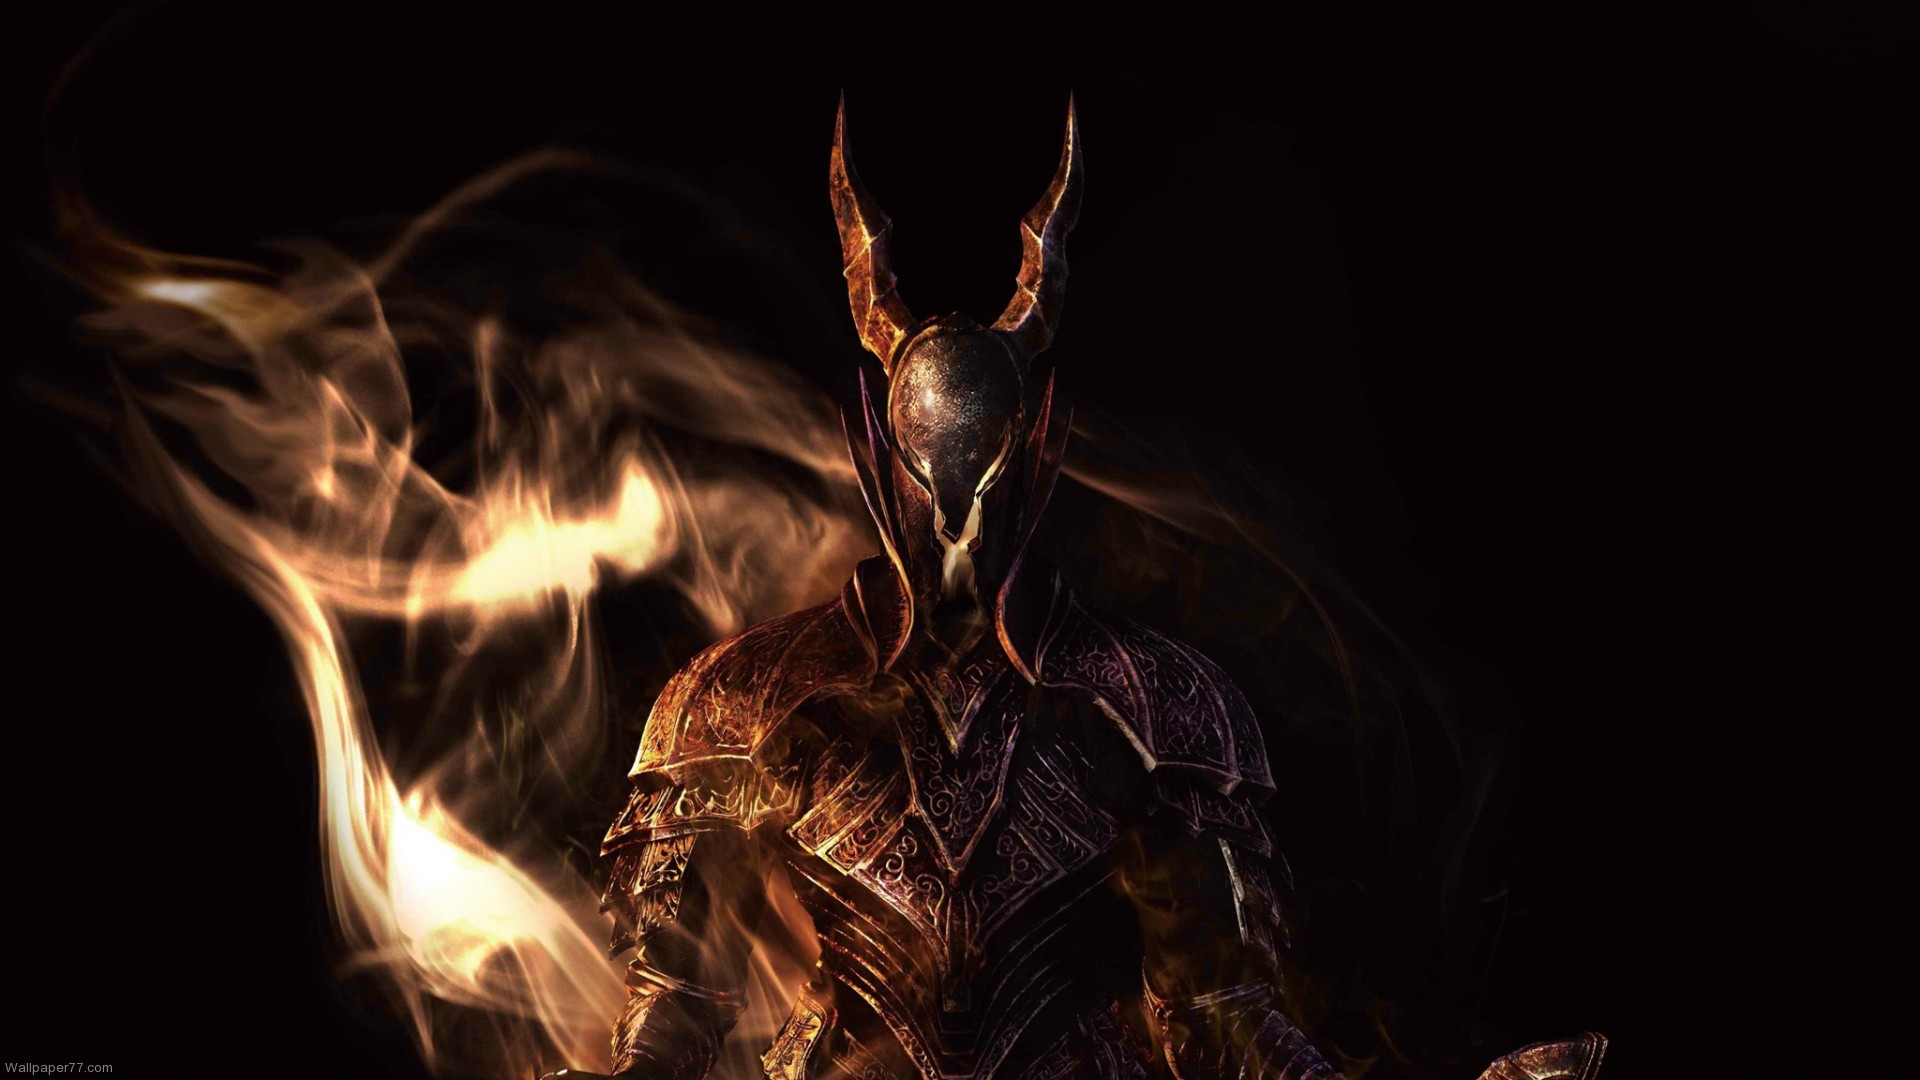 Dark Souls ipad 3 wallpaper ipad wallpaper retina display wallpaper 1920x1080